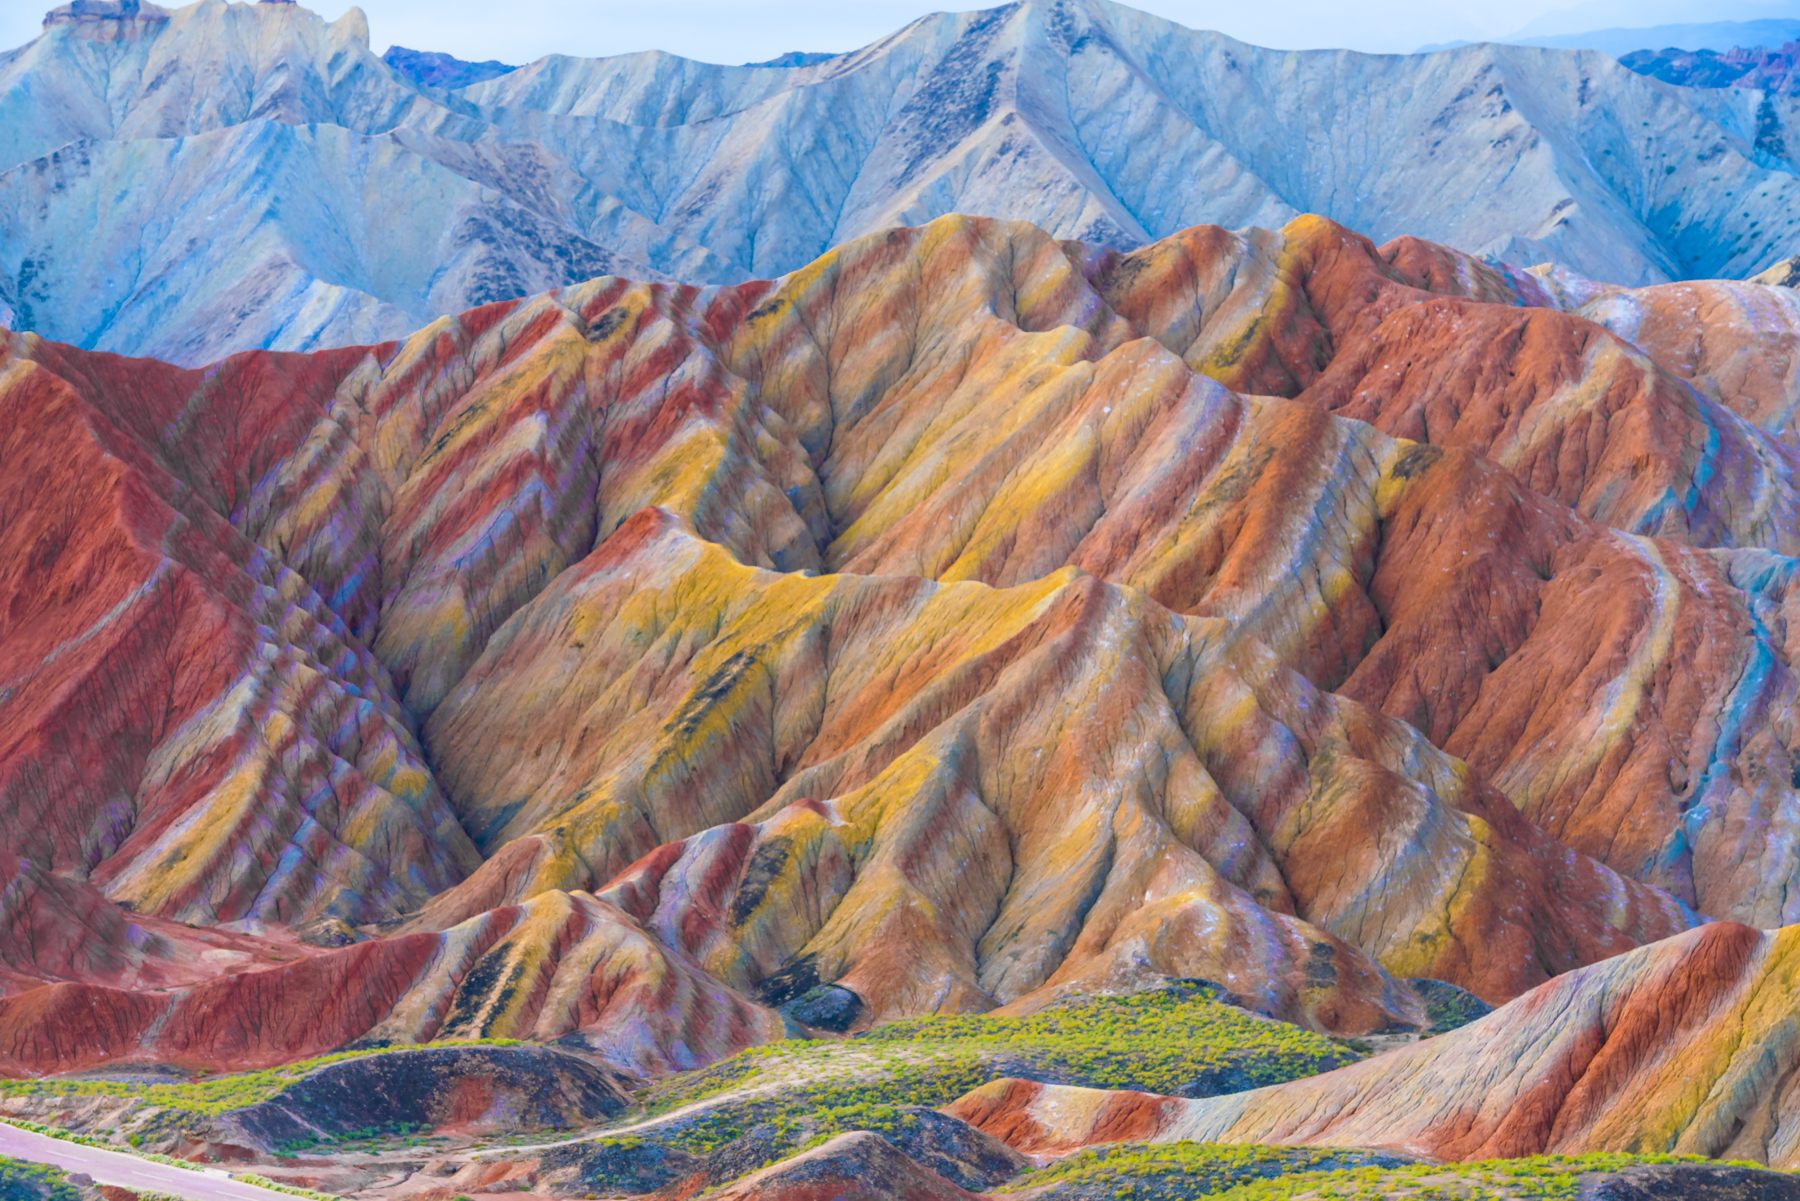 Read about Tom's adventures in Zhangye Danxia, China